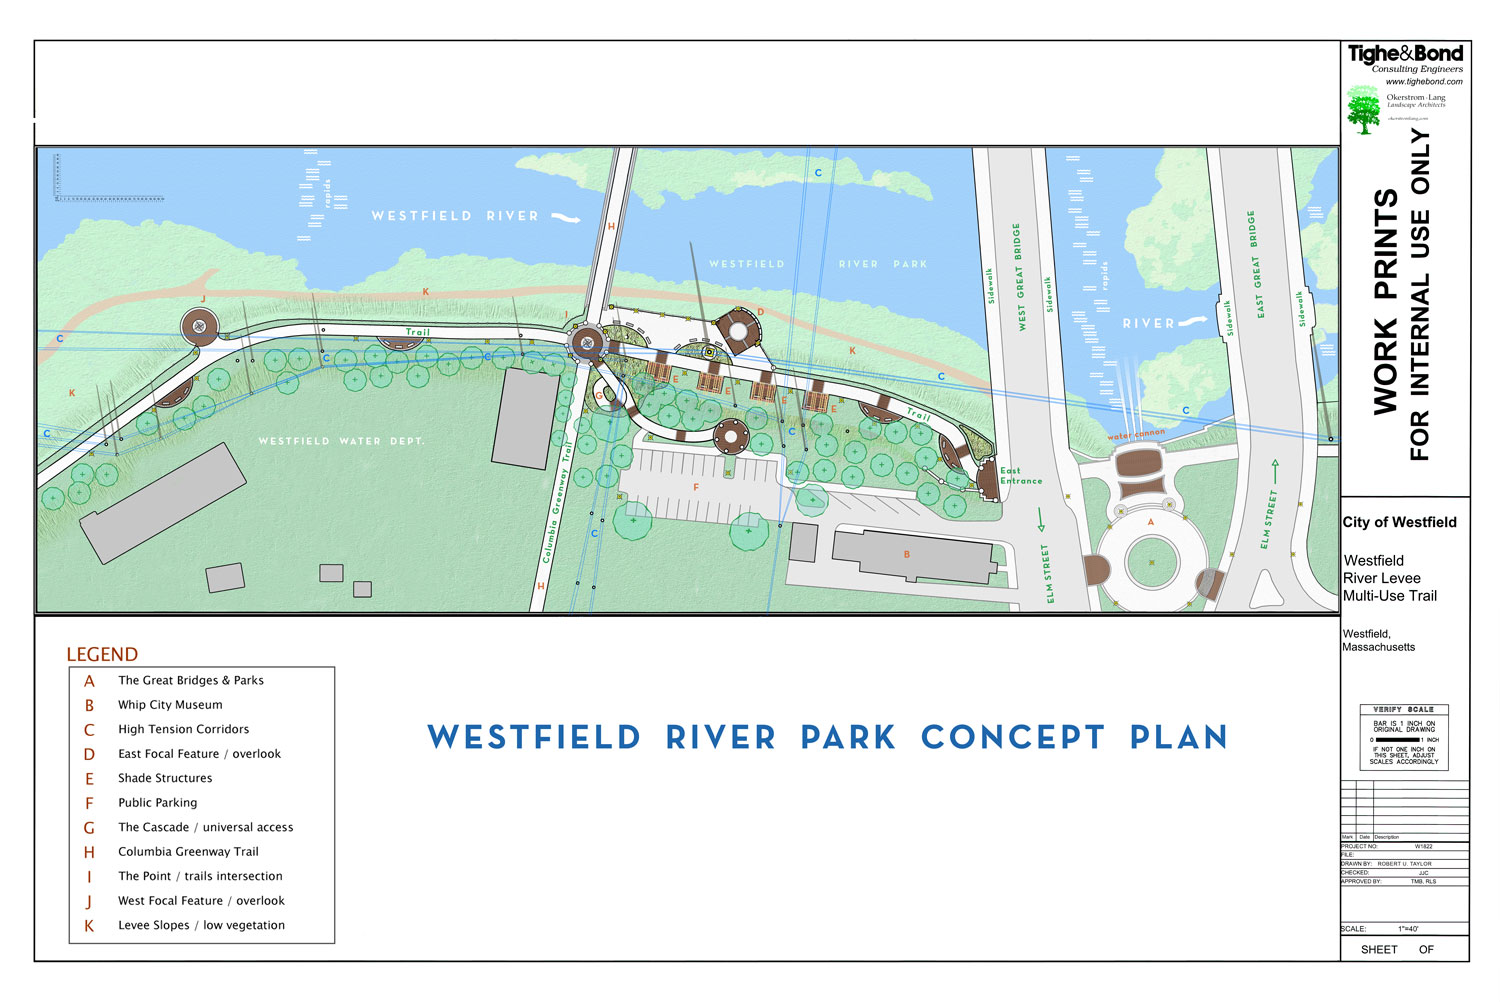 2014_08_25-Westfield-River-Park-concept-plan-by-OL-Ltd